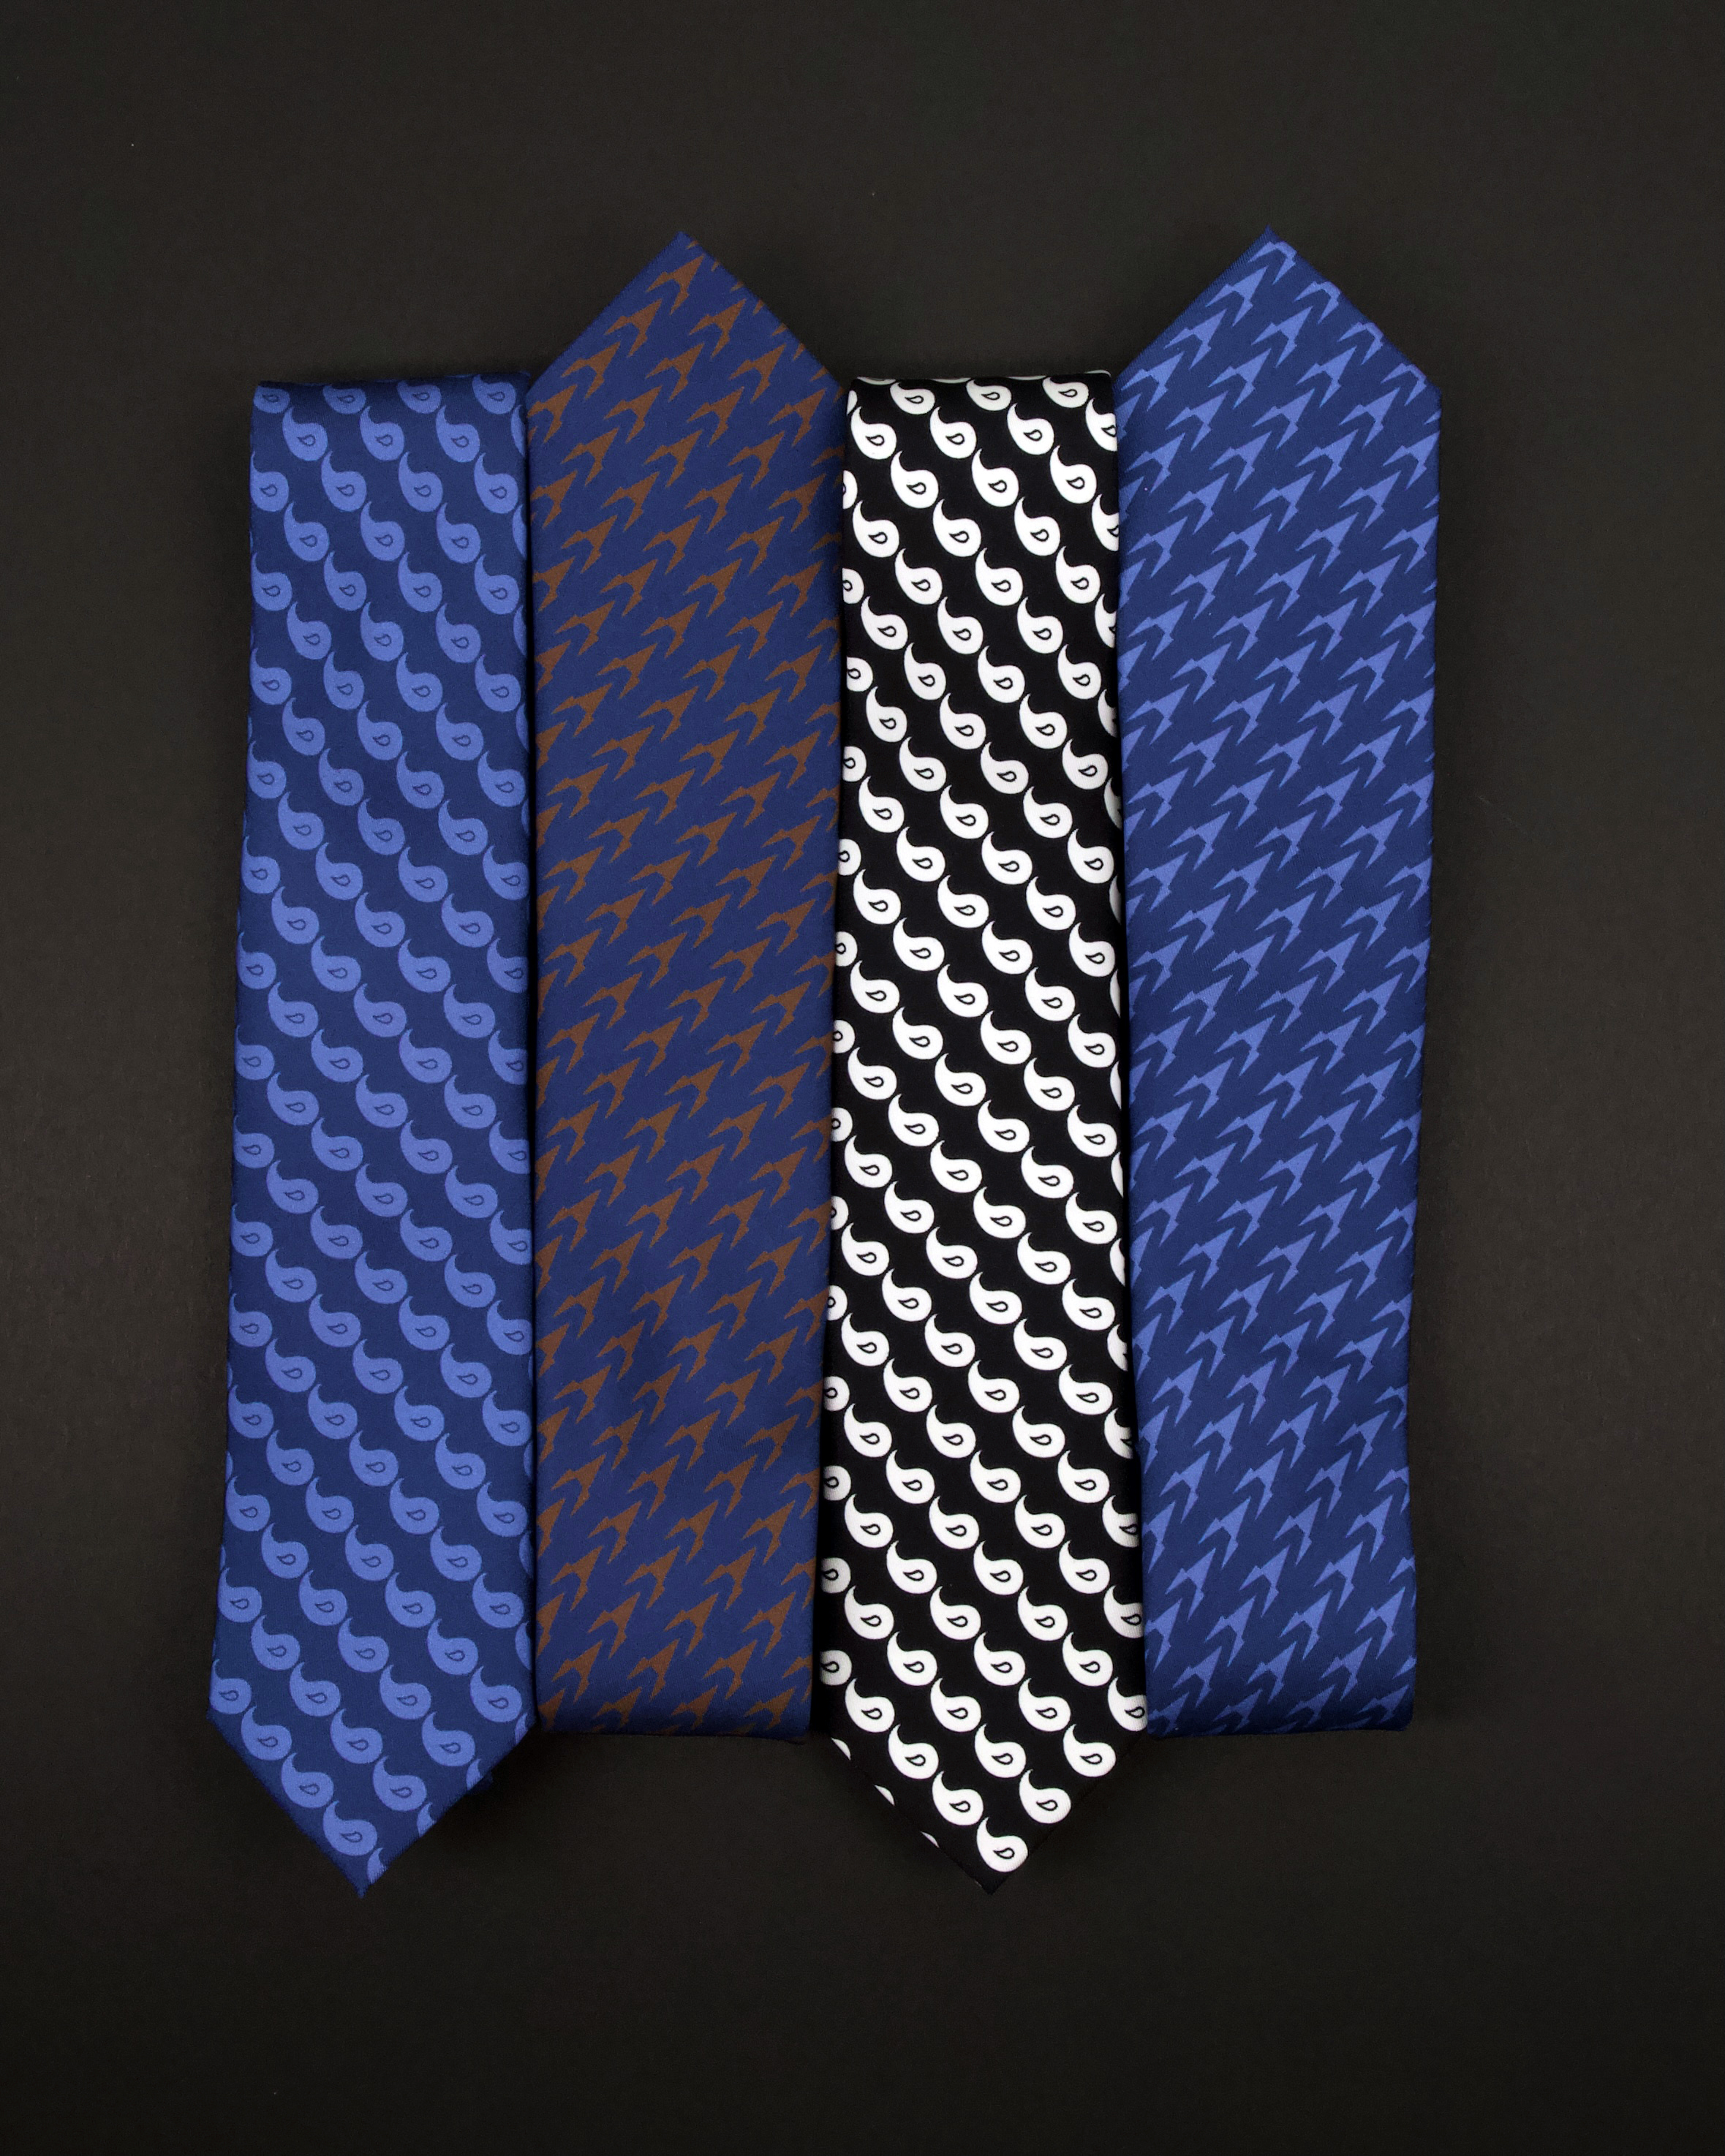 Styles from the Tie Bar X Michel Men collaboration